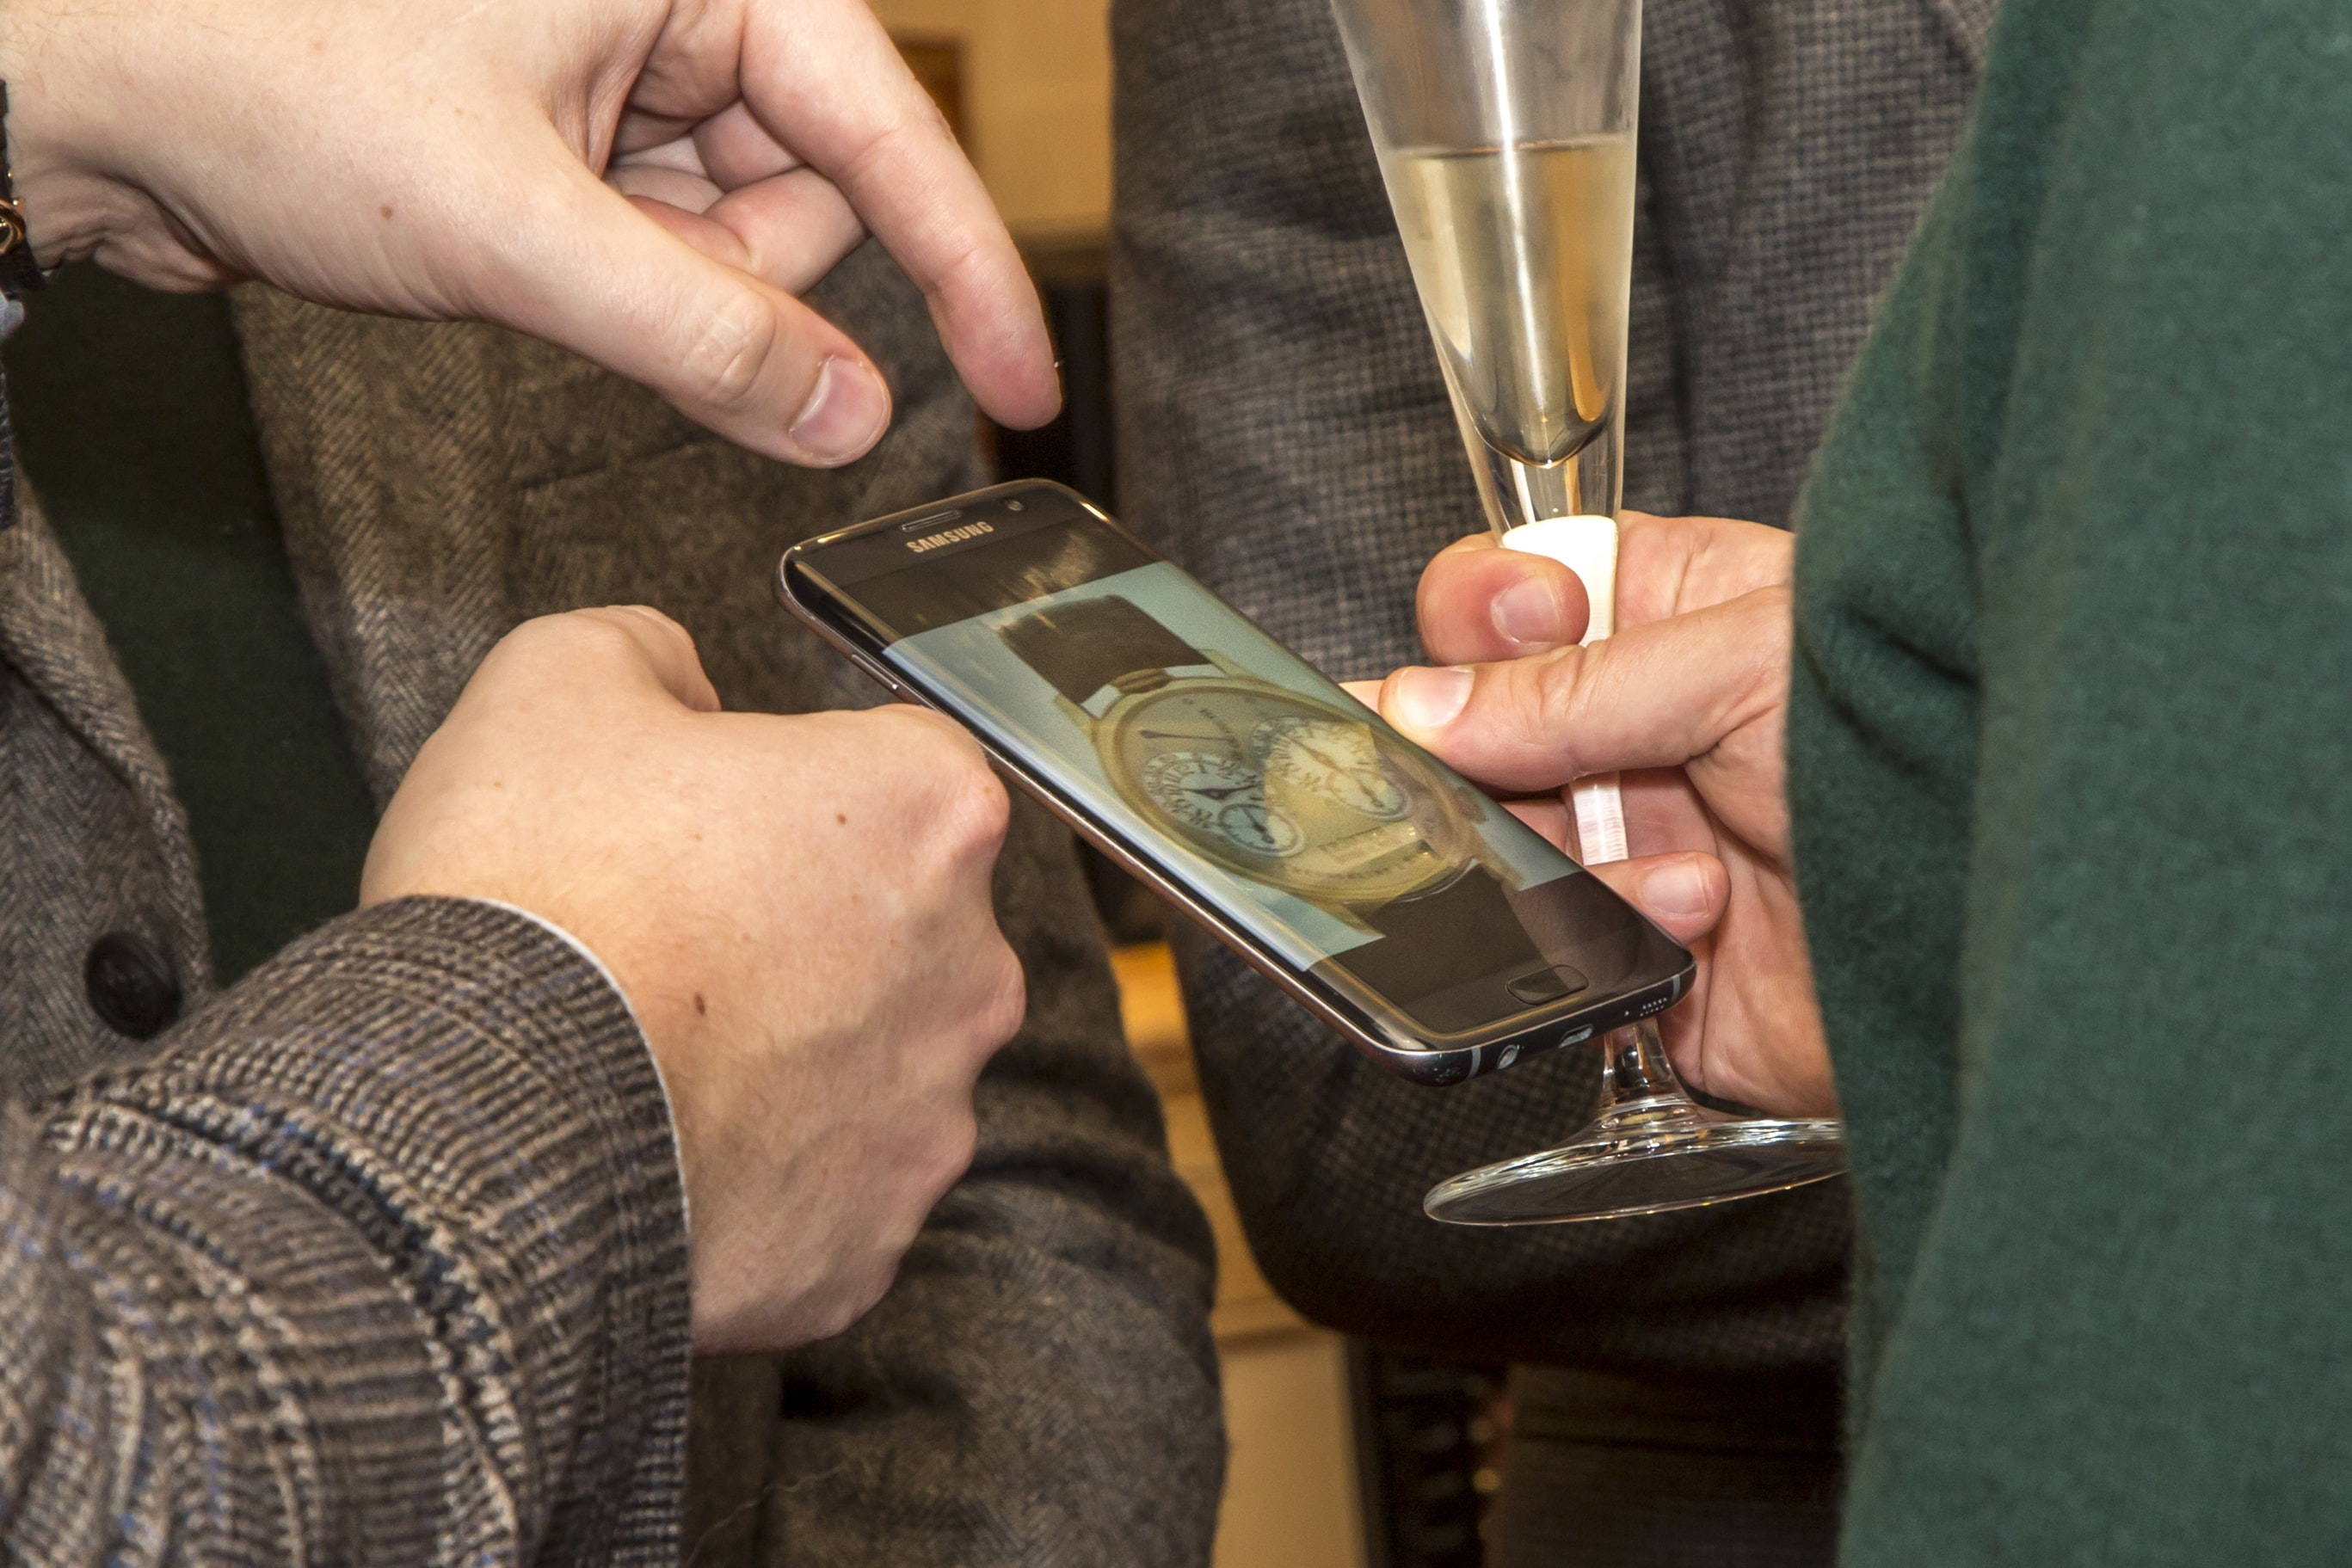 Photo Report: HODINKEE Hosts A Collector Get-Together At The Wempe Boutique In London Photo Report: HODINKEE Hosts A Collector Get-Together At The Wempe Boutique In London five